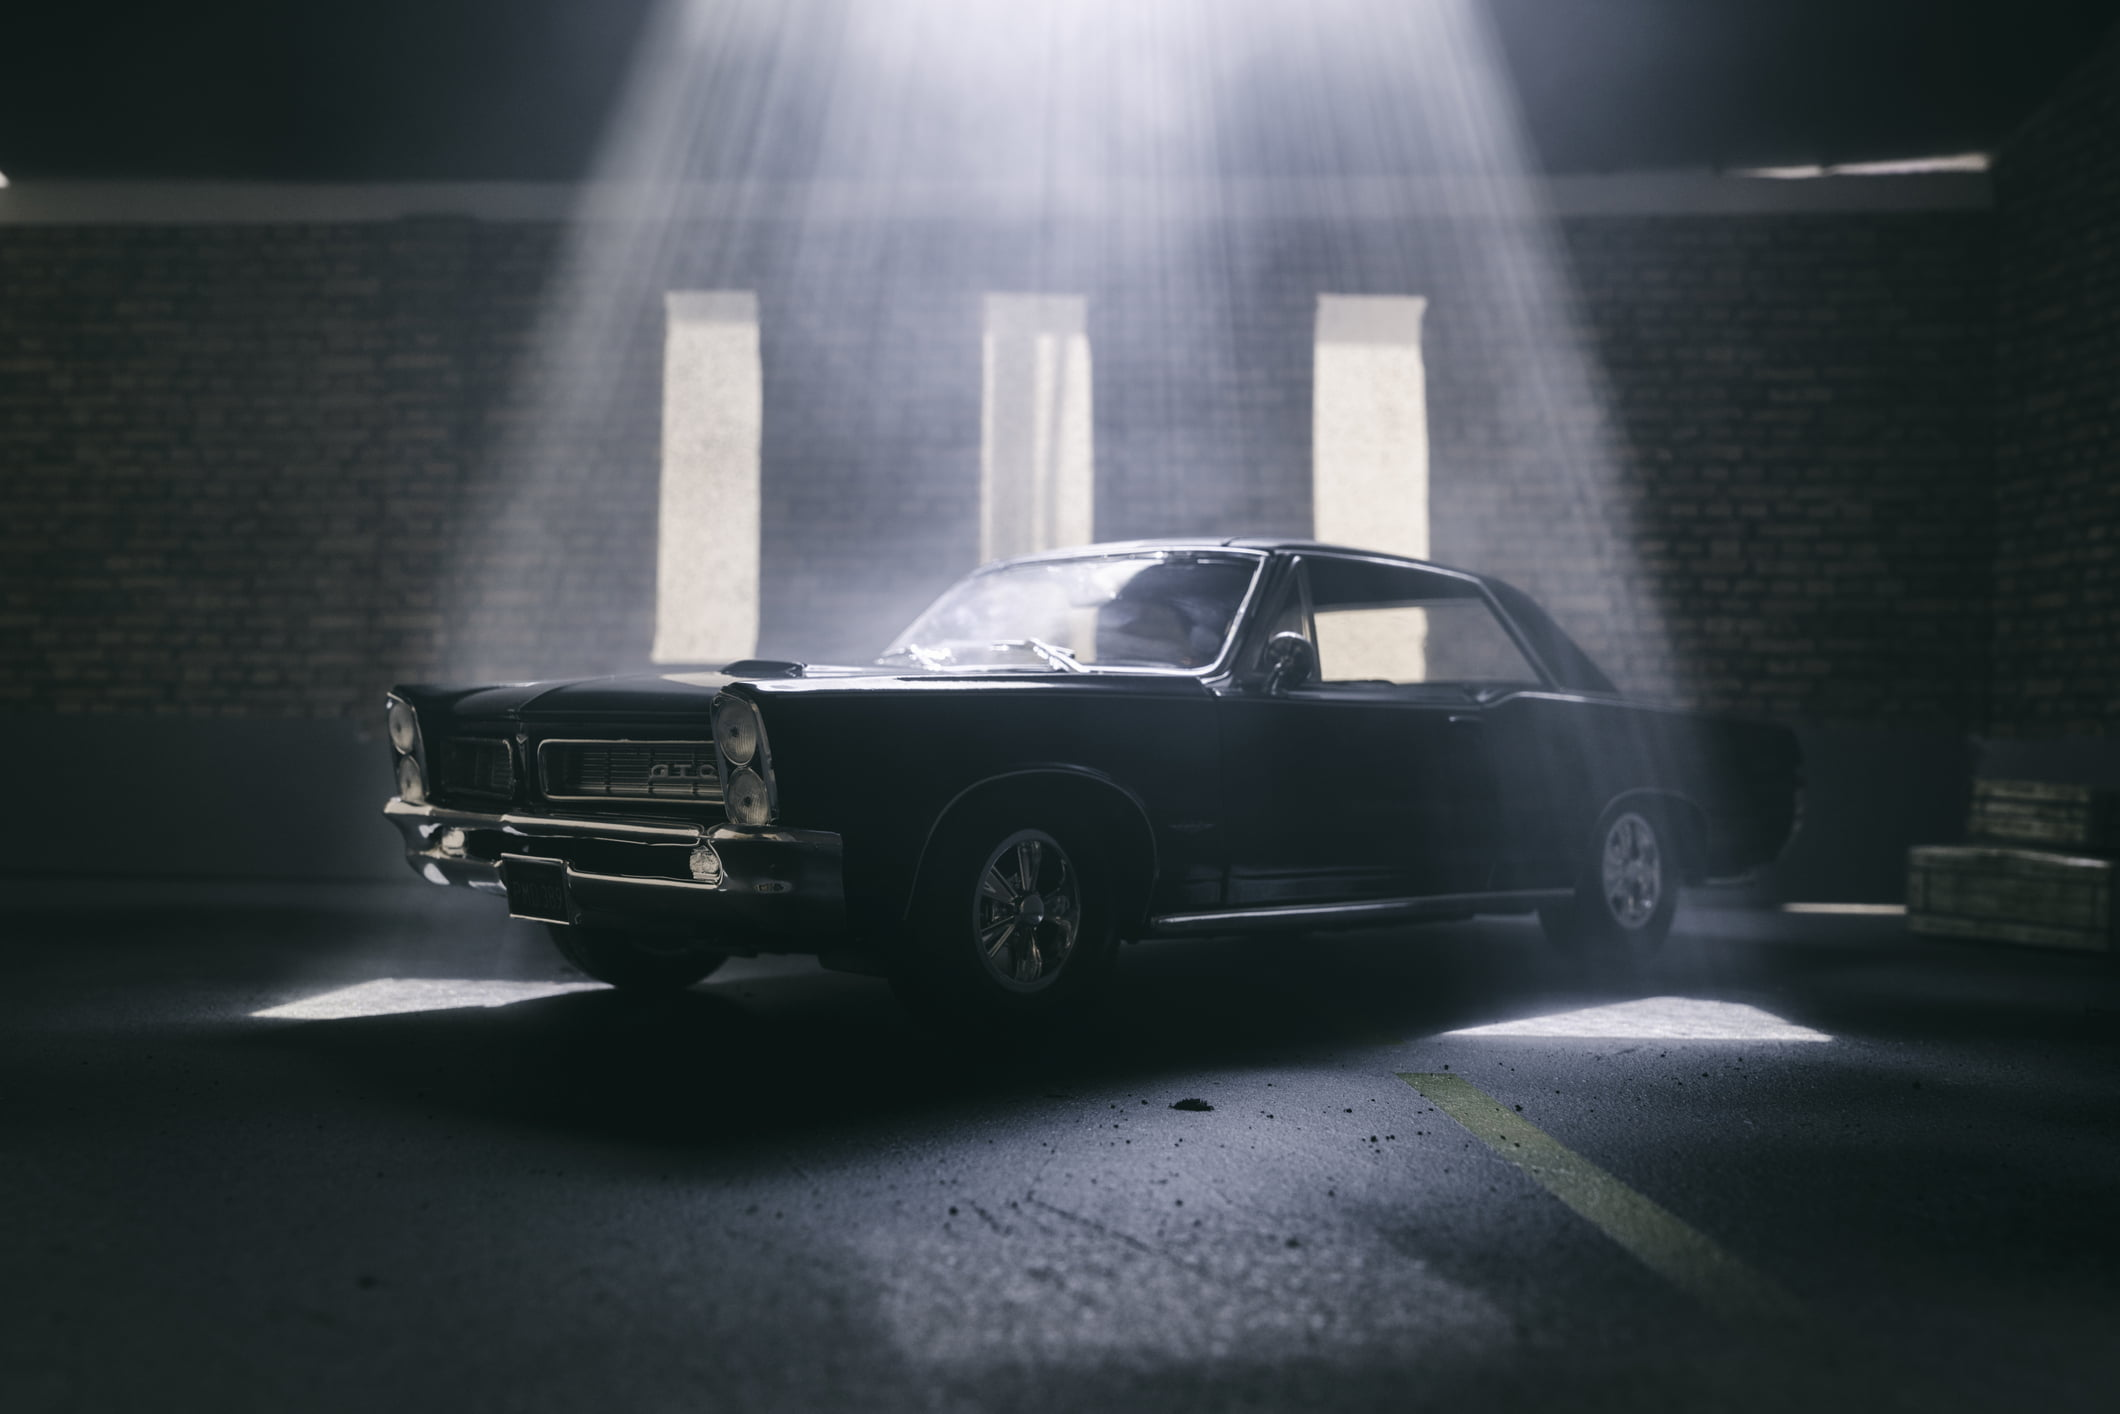 Model Pontiac GTO In Atmospheric Garage